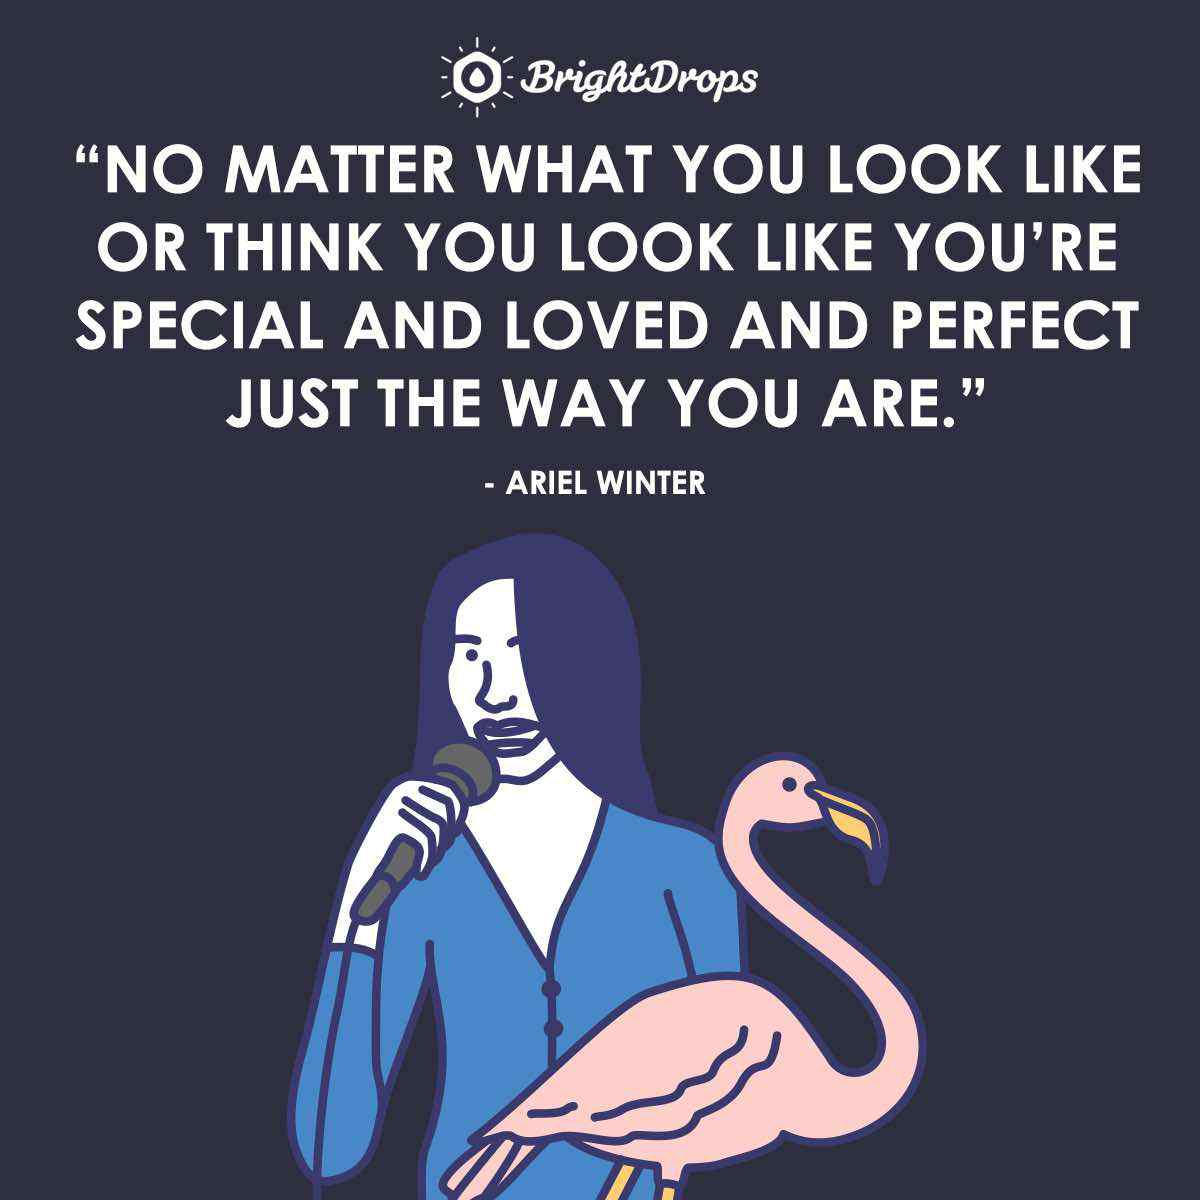 """No matter what you look like or think you look like you're special and loved and perfect just the way you are."" ~ Ariel Winter"